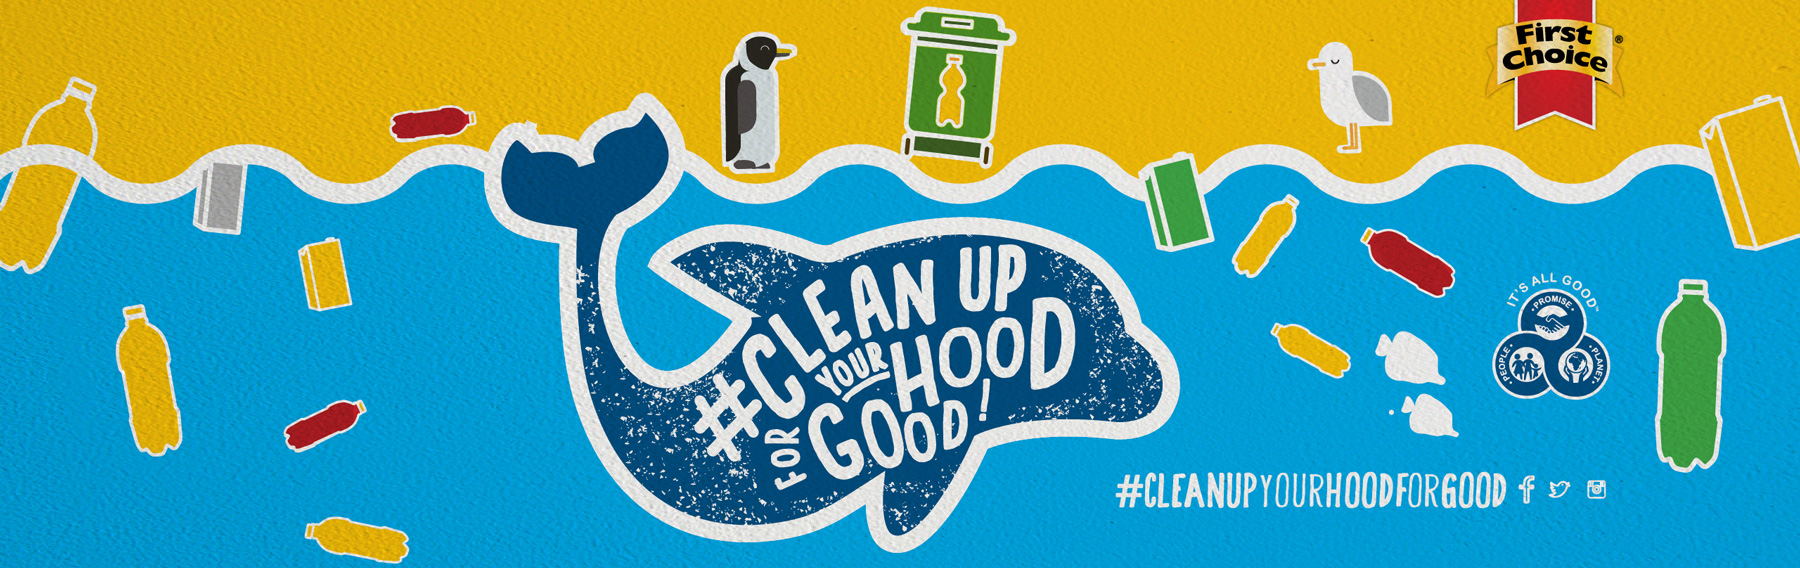 Clean Up Your Hood For Good Campaign with First Choice